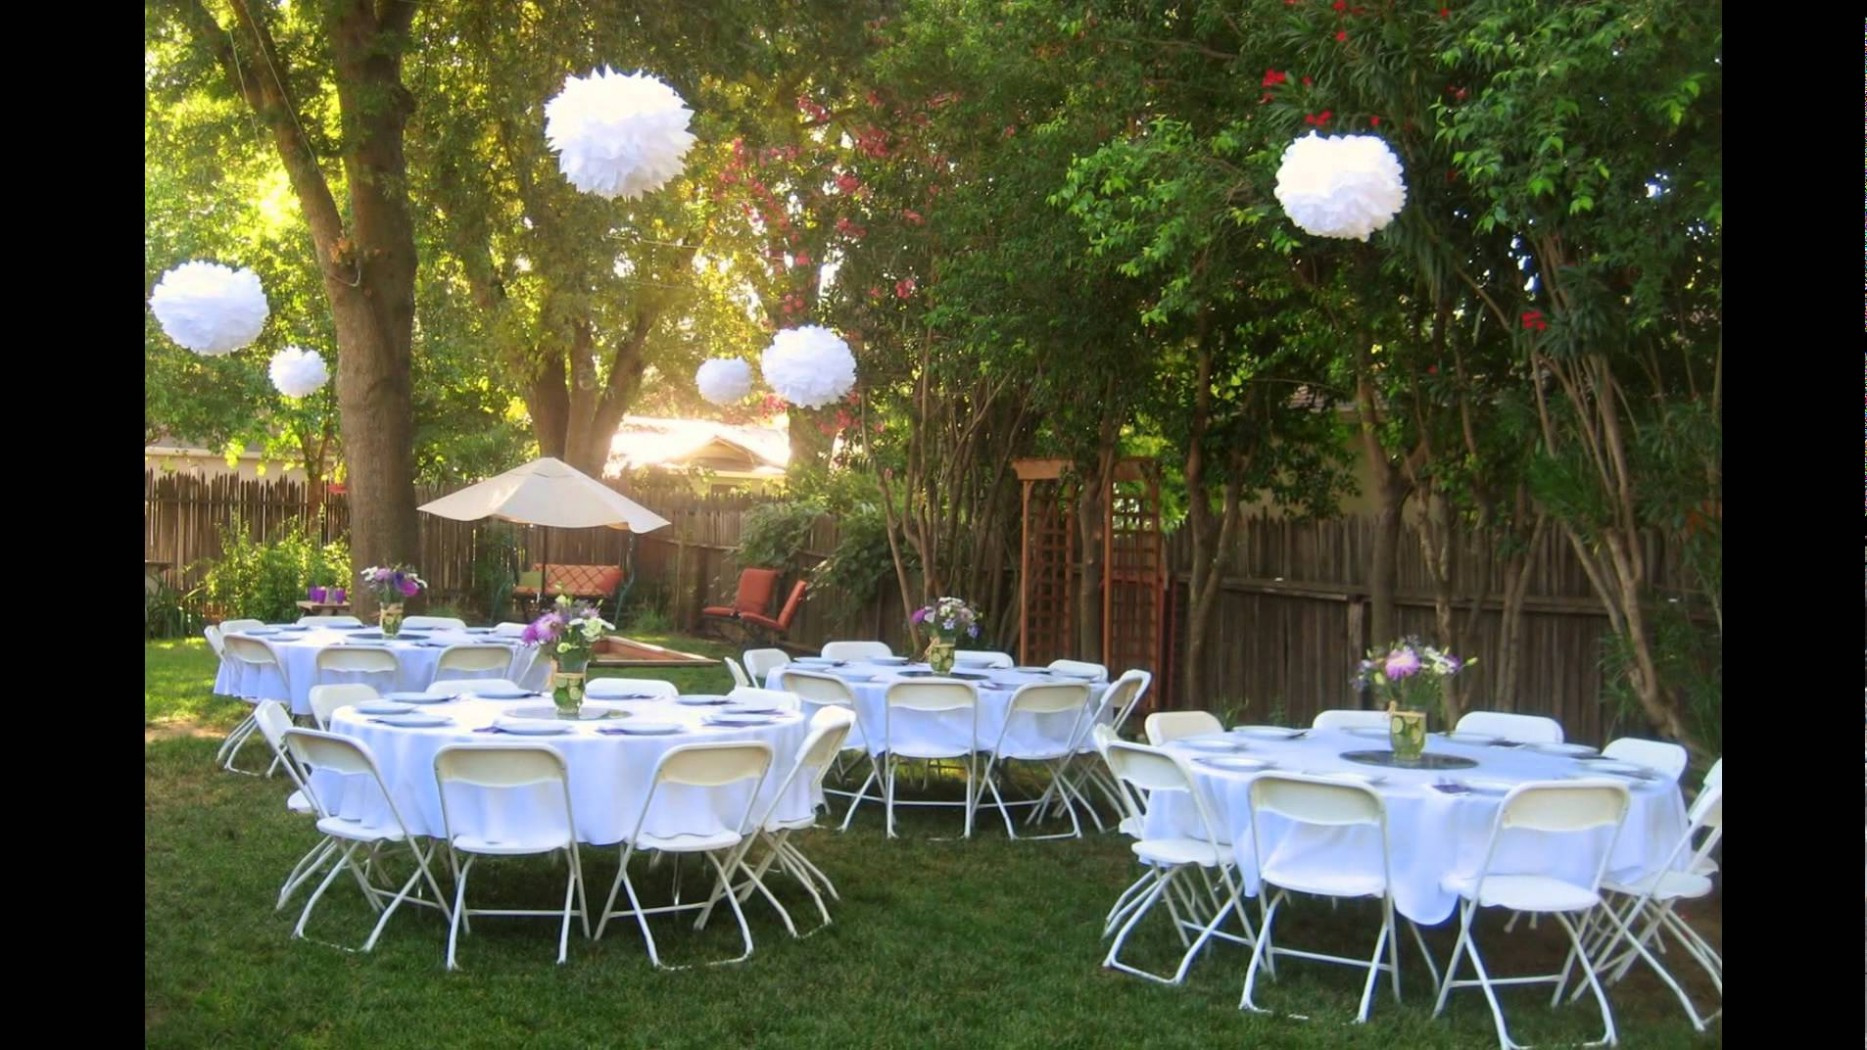 Wedding Ideas Backyard Wedding Decorations Winsome intended for 13 Genius Designs of How to Build Backyard Wedding Decorations Ideas